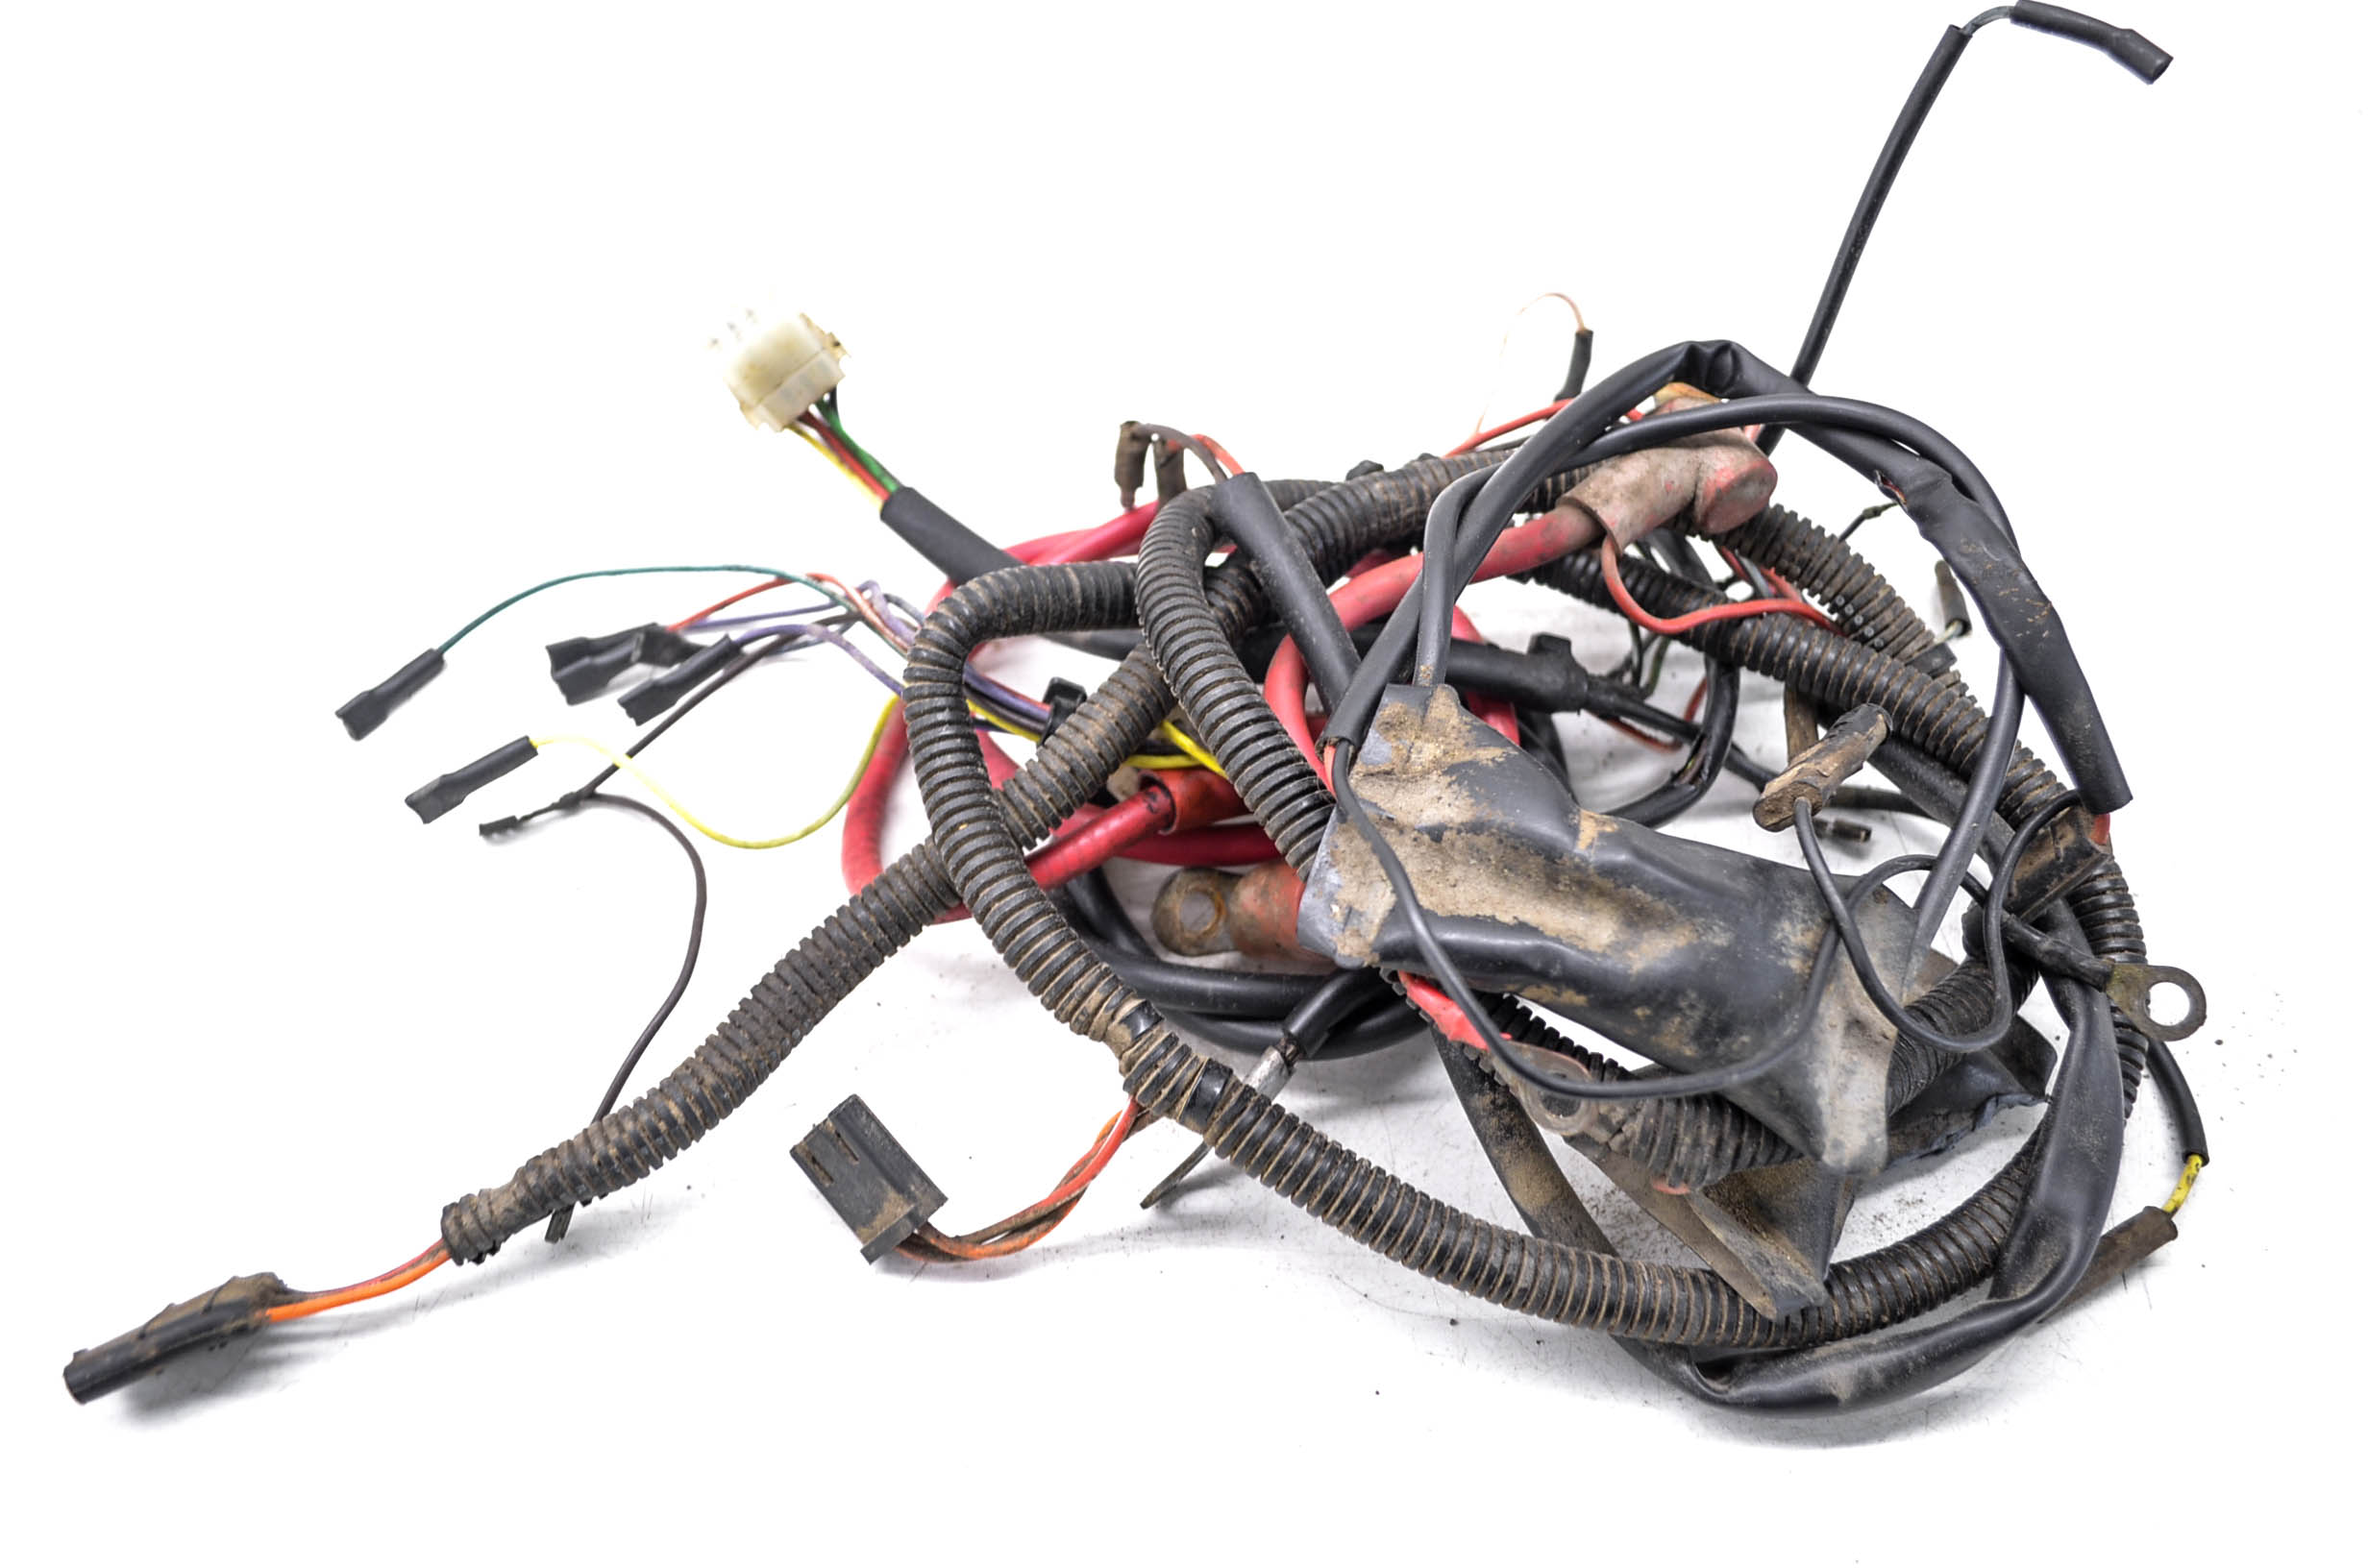 95 Polaris Xplorer 400 4x4 Wire Harness Electrical Wiring